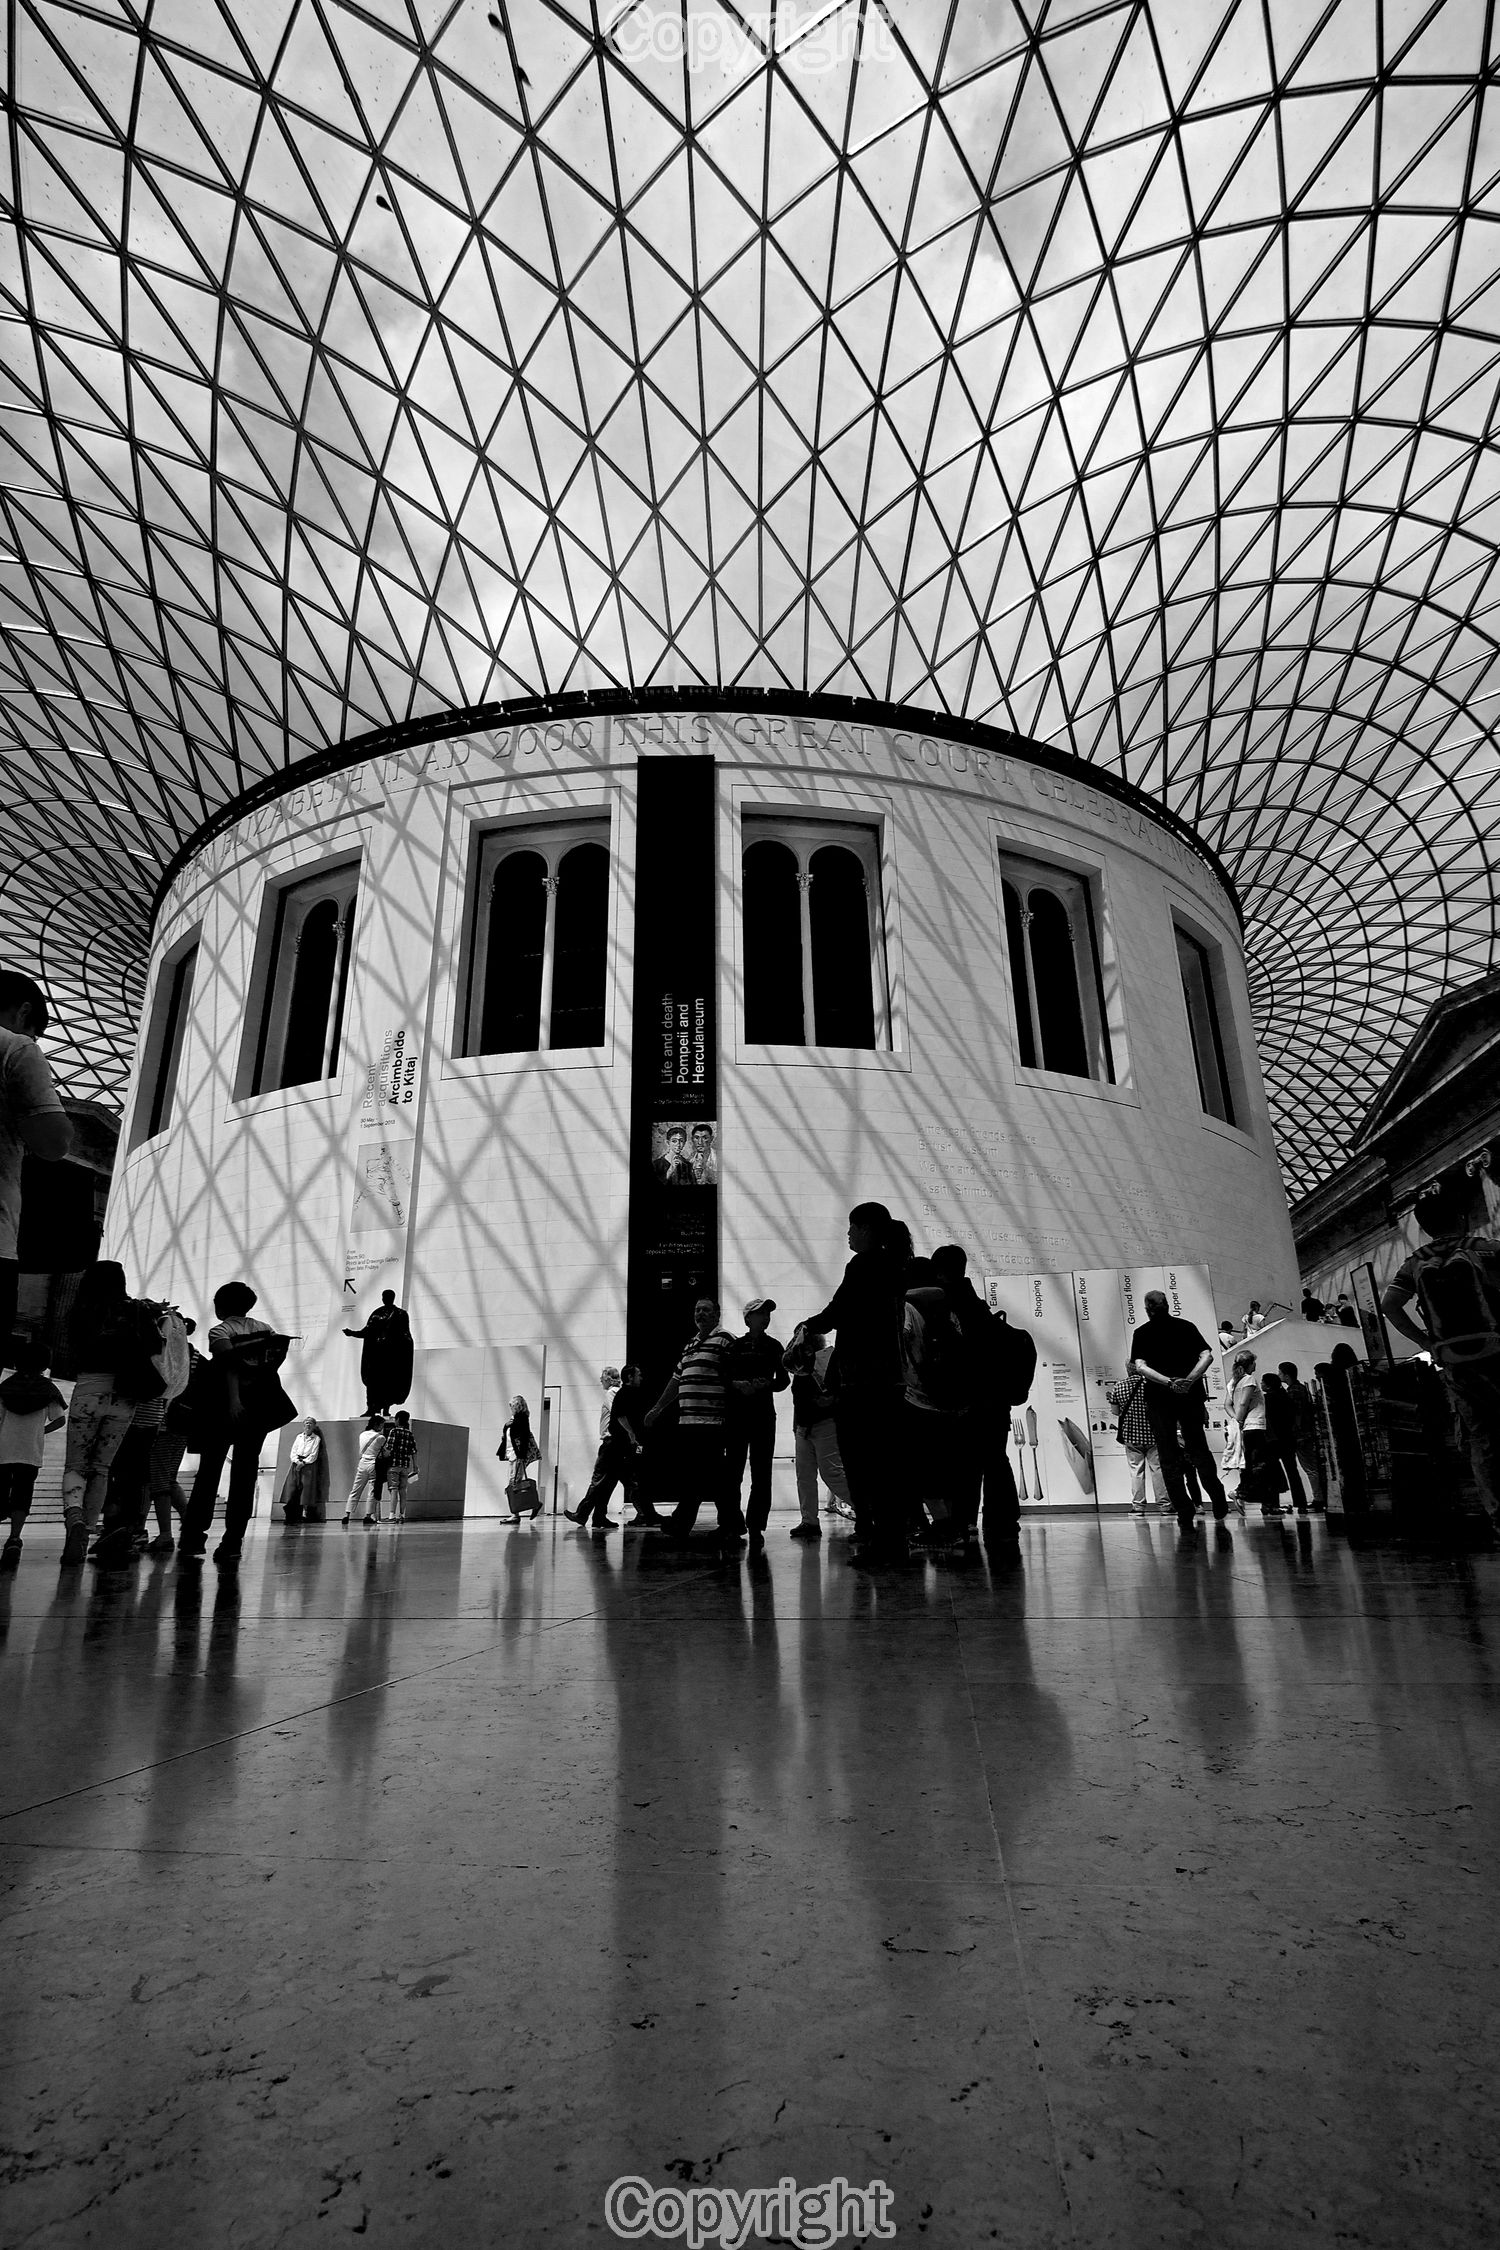 Taken with EOS600d , Canon EF-S 10-22mm at the British Museum.